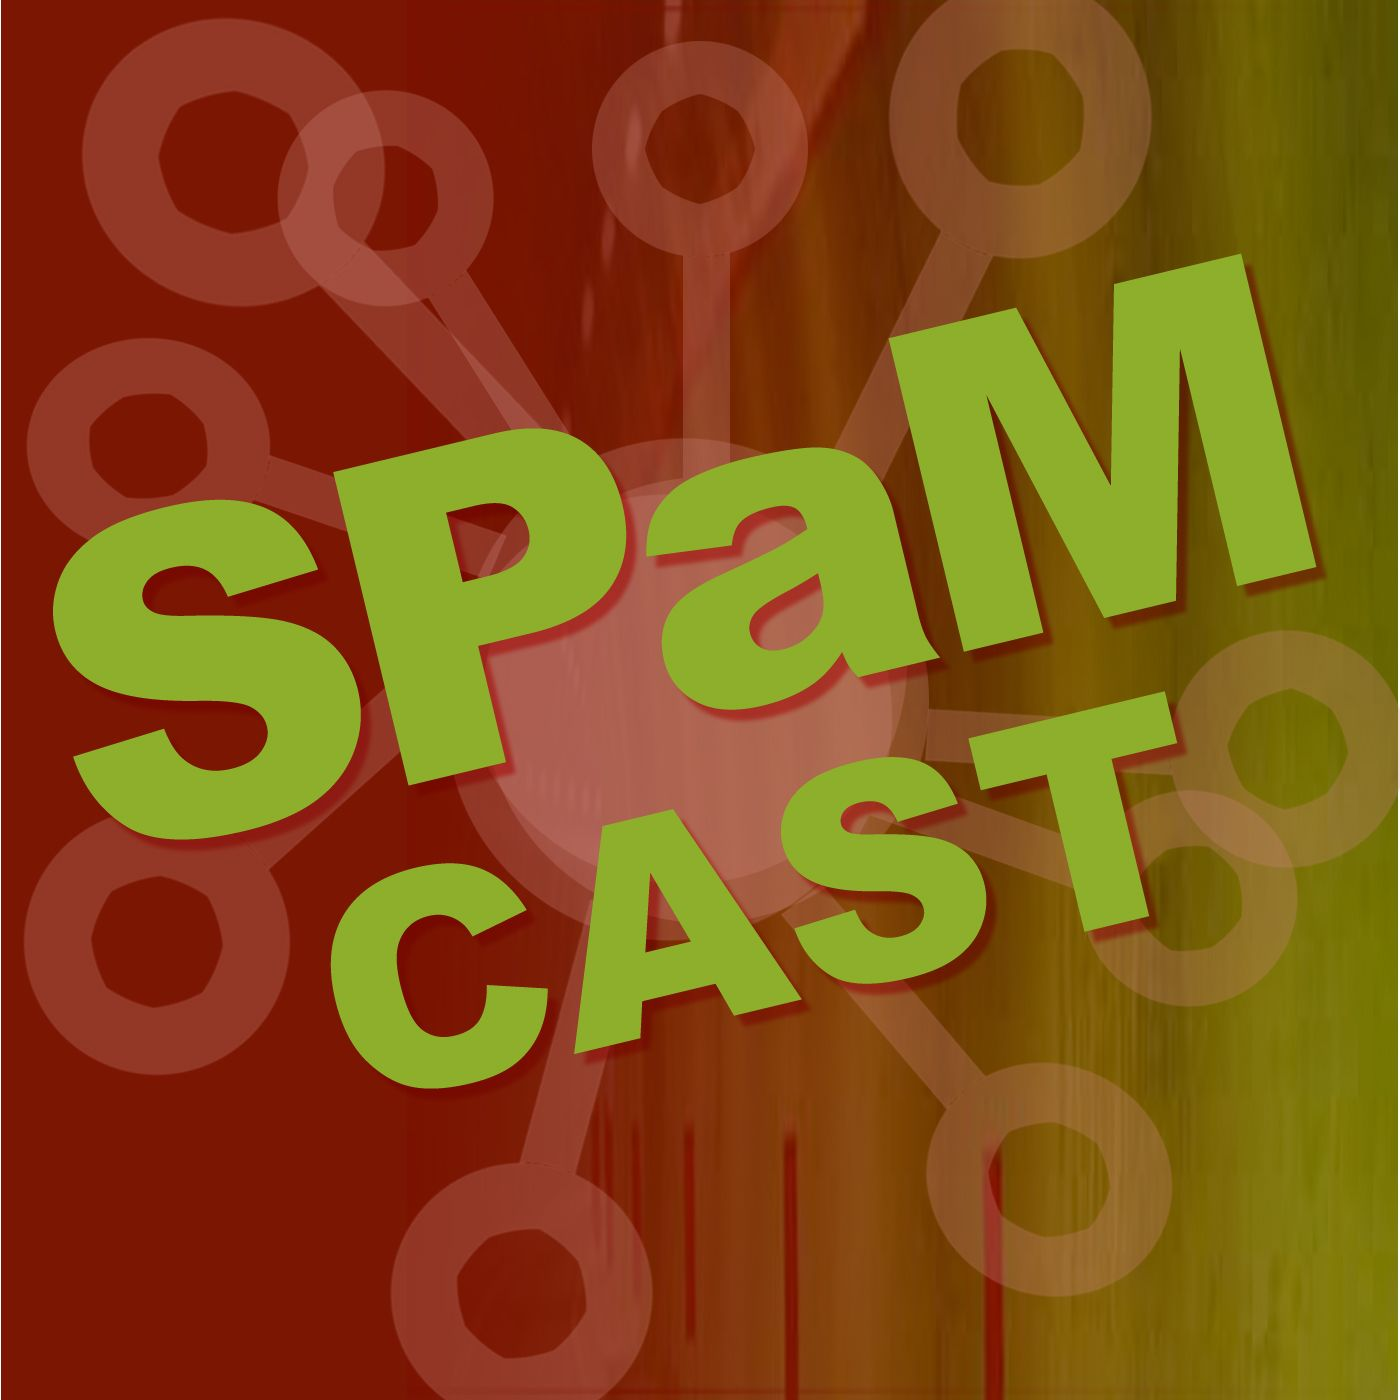 SPaMCAST 597 - Intentional Serendipity, A Panel Discussion with Laberge, Parente, Voris, Sweeney, and Cagley